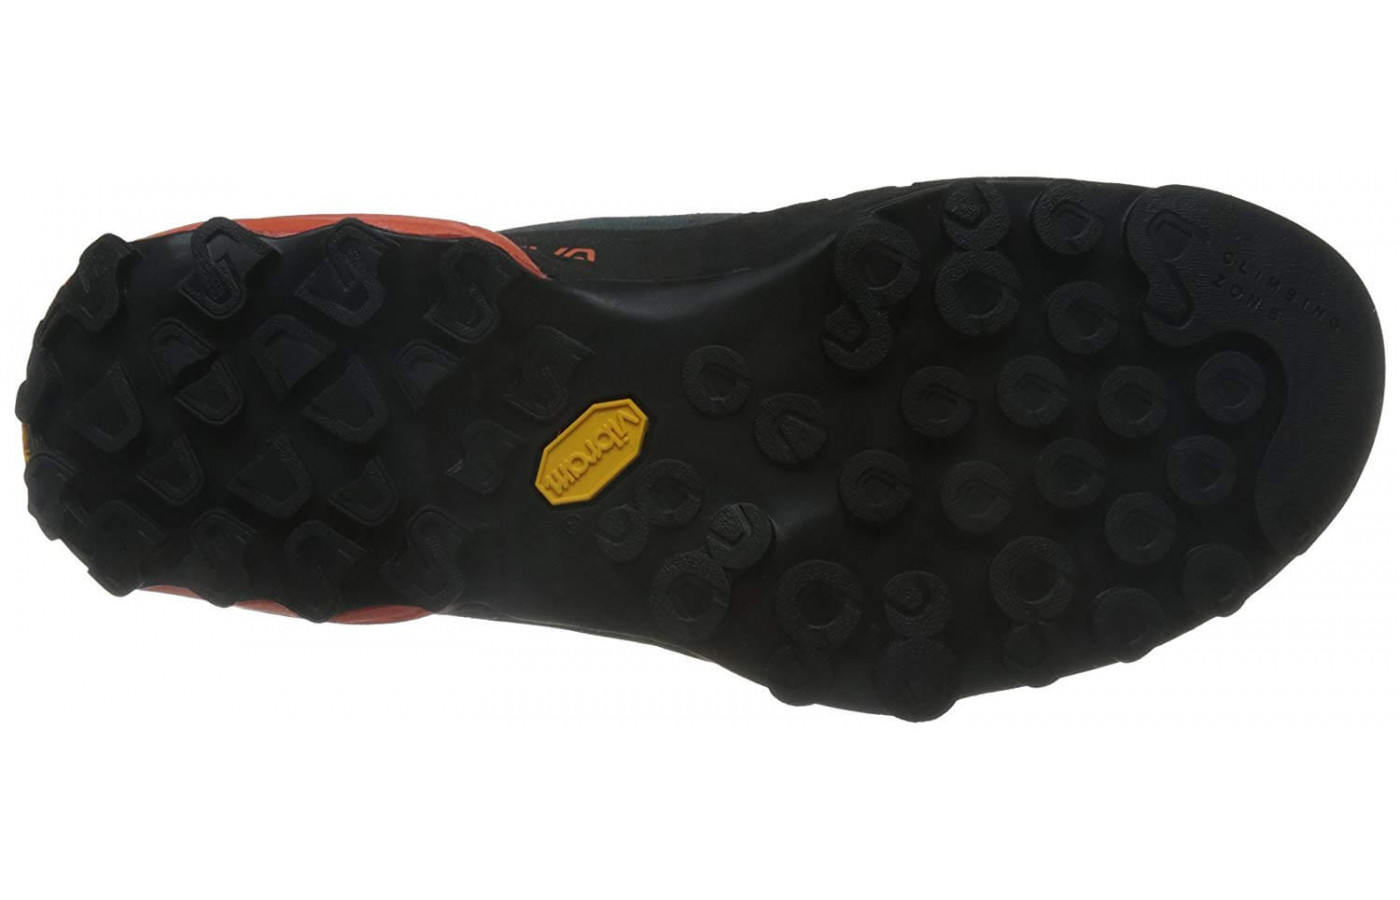 La Sportiva Tx4 GTX Bottom